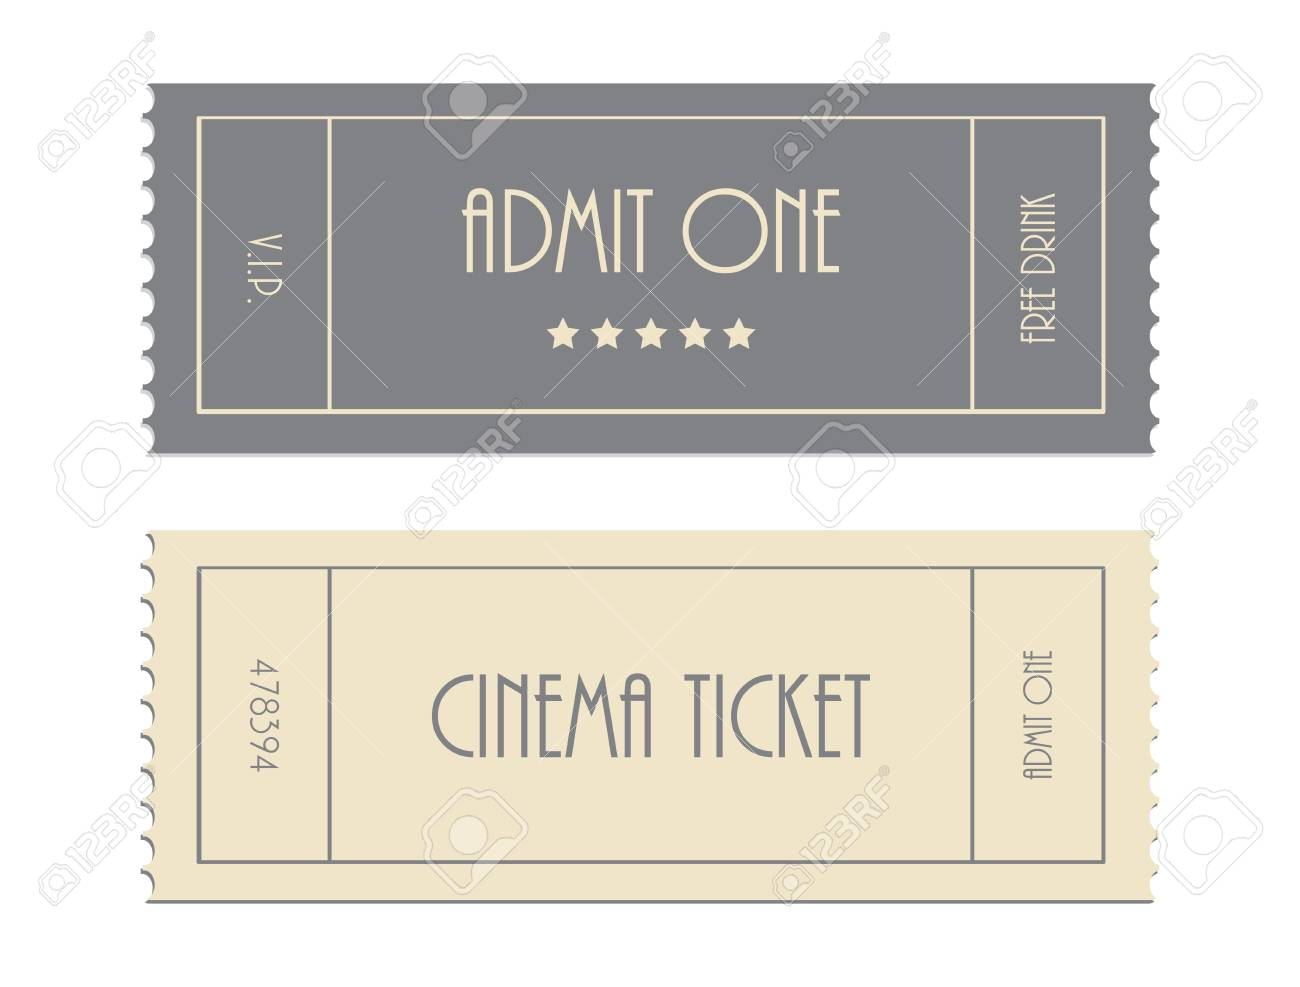 Special Vector Ticket Template Admit One Cinema Ticket Royalty - Admit one ticket template